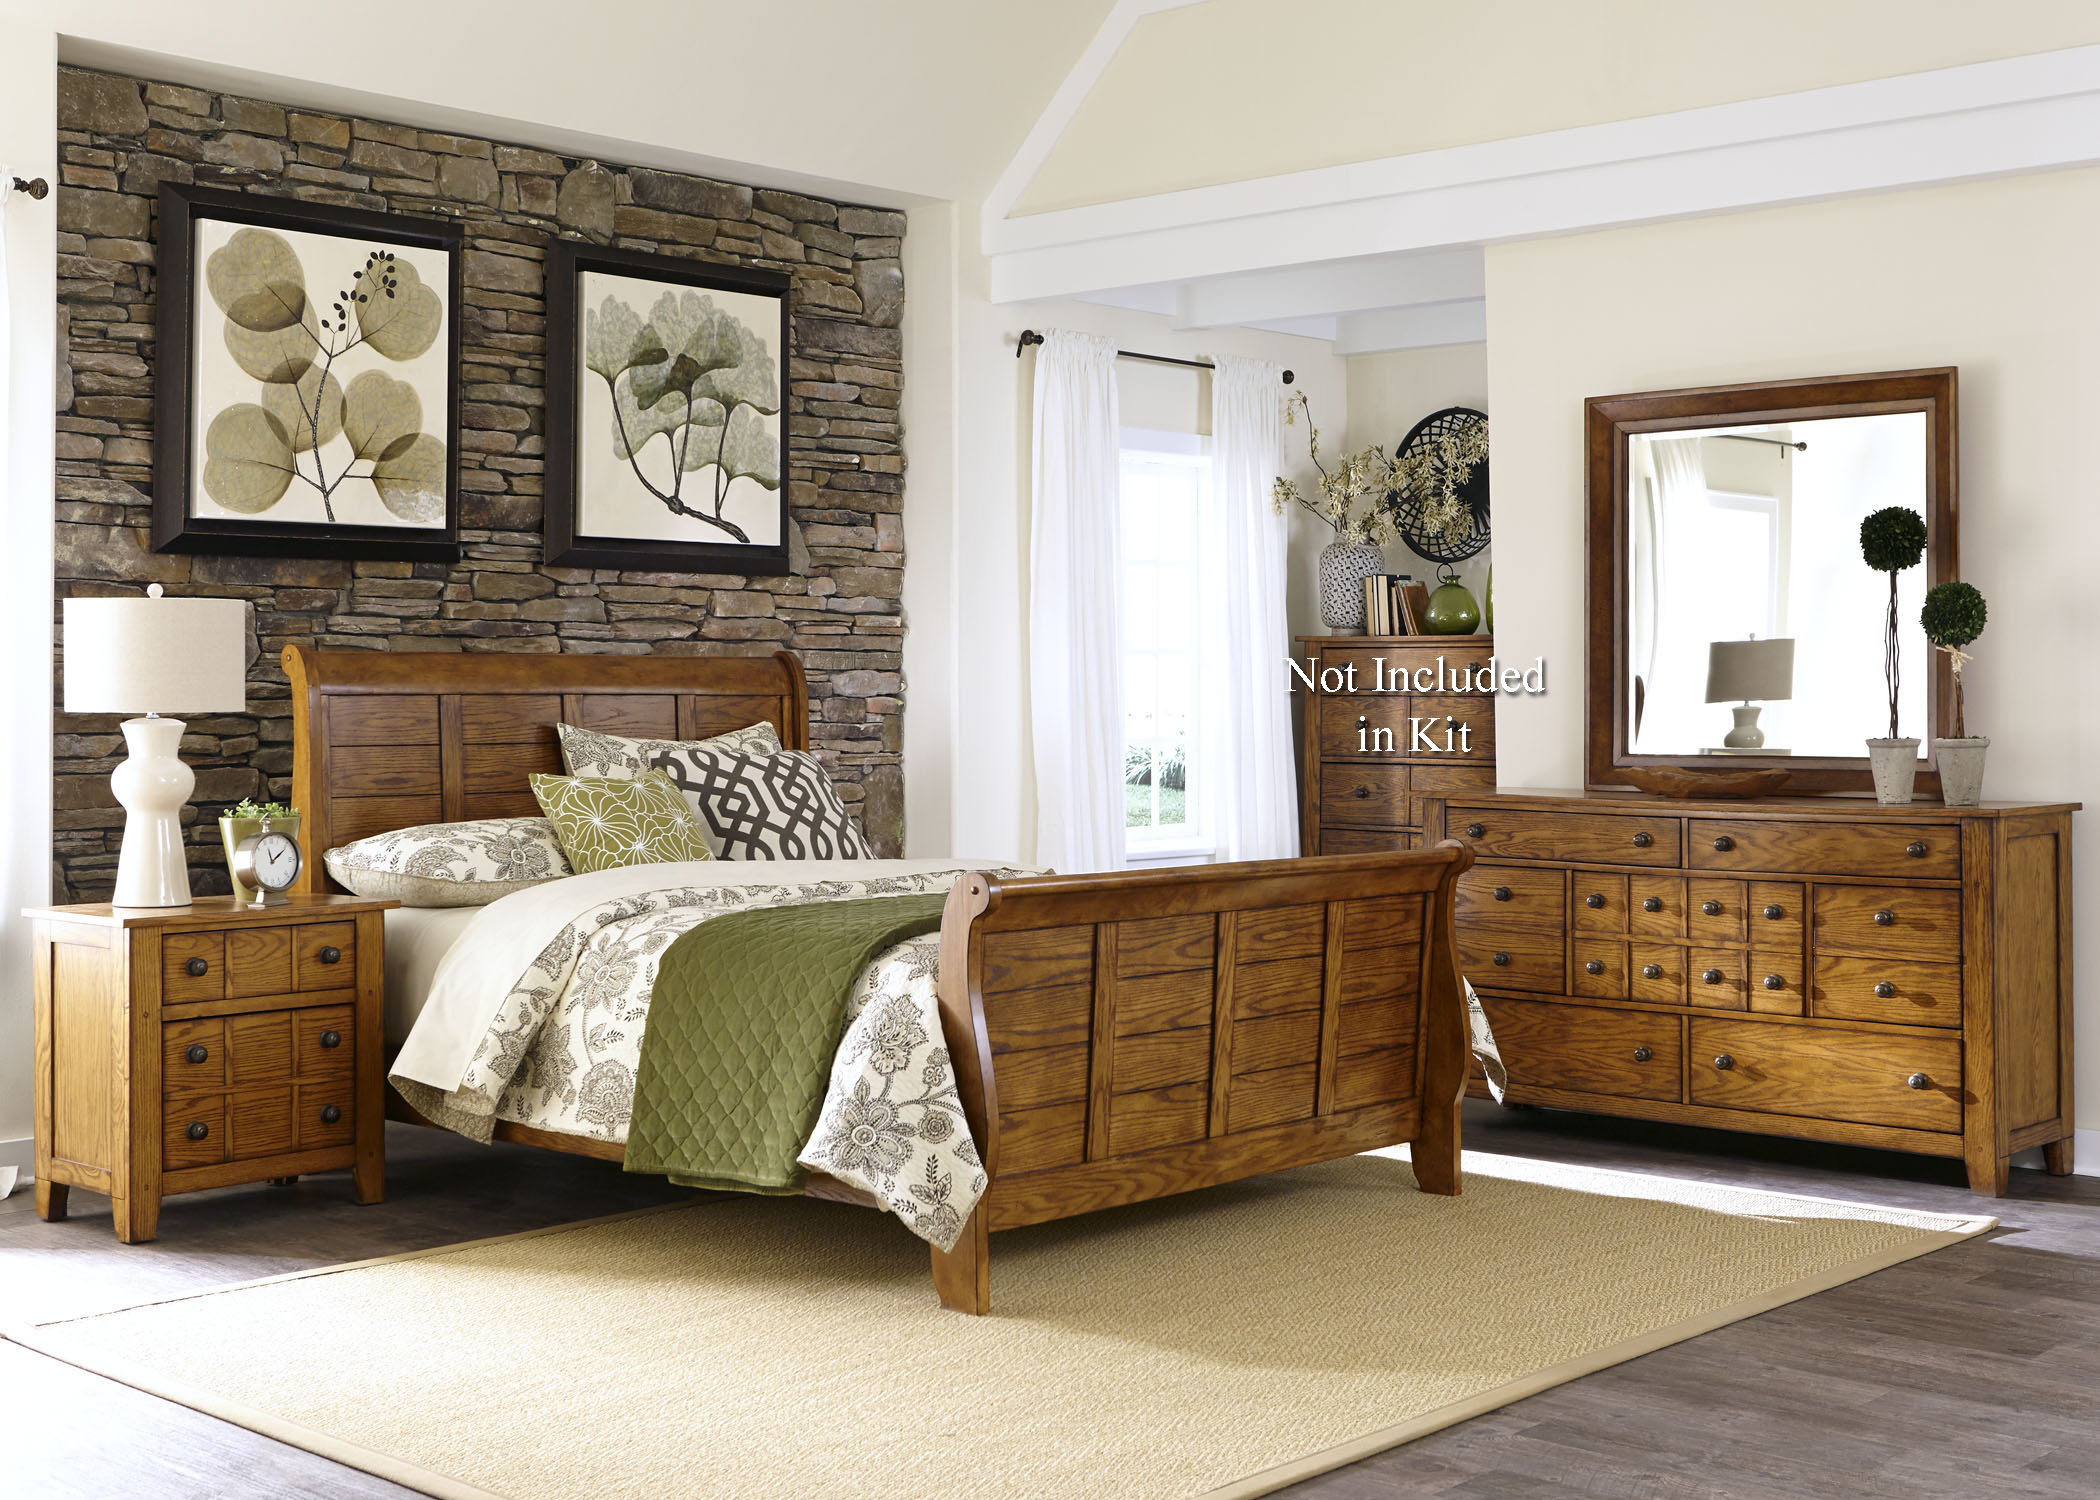 Grandpa's Cabin Queen Bedroom Group by Liberty Furniture at Catalog Outlet